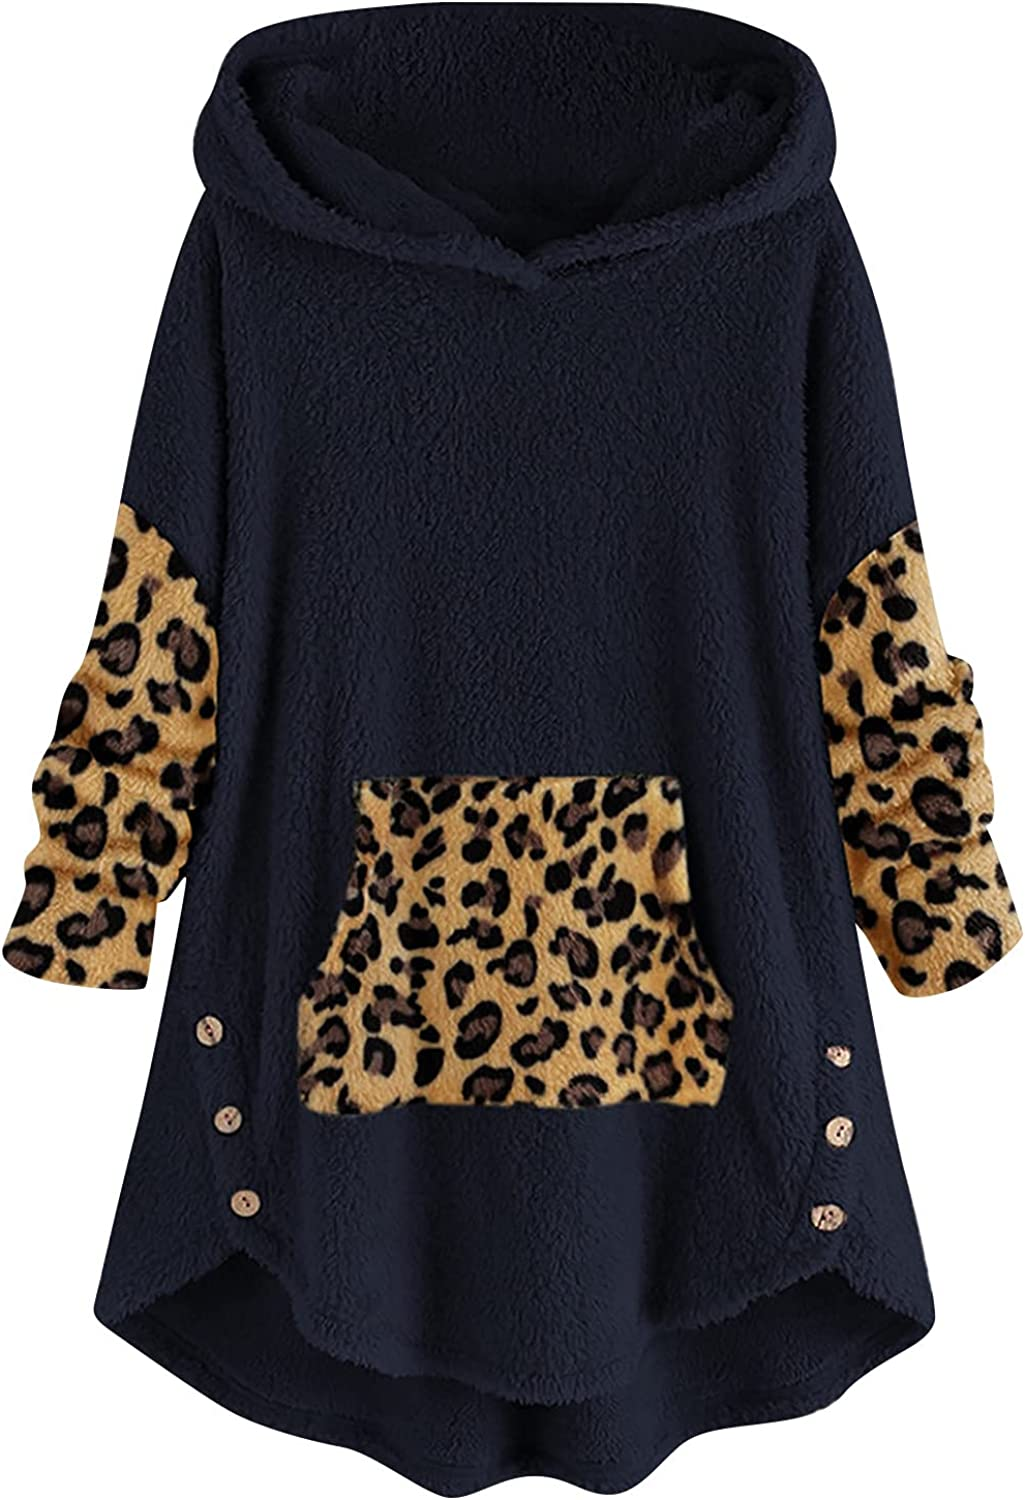 Winter Coats for Women,Womens Comfy Hoodies Pullover Tops Leopard Patchwork Printed Long Sleeve Ladies Plush Warm Overcoat